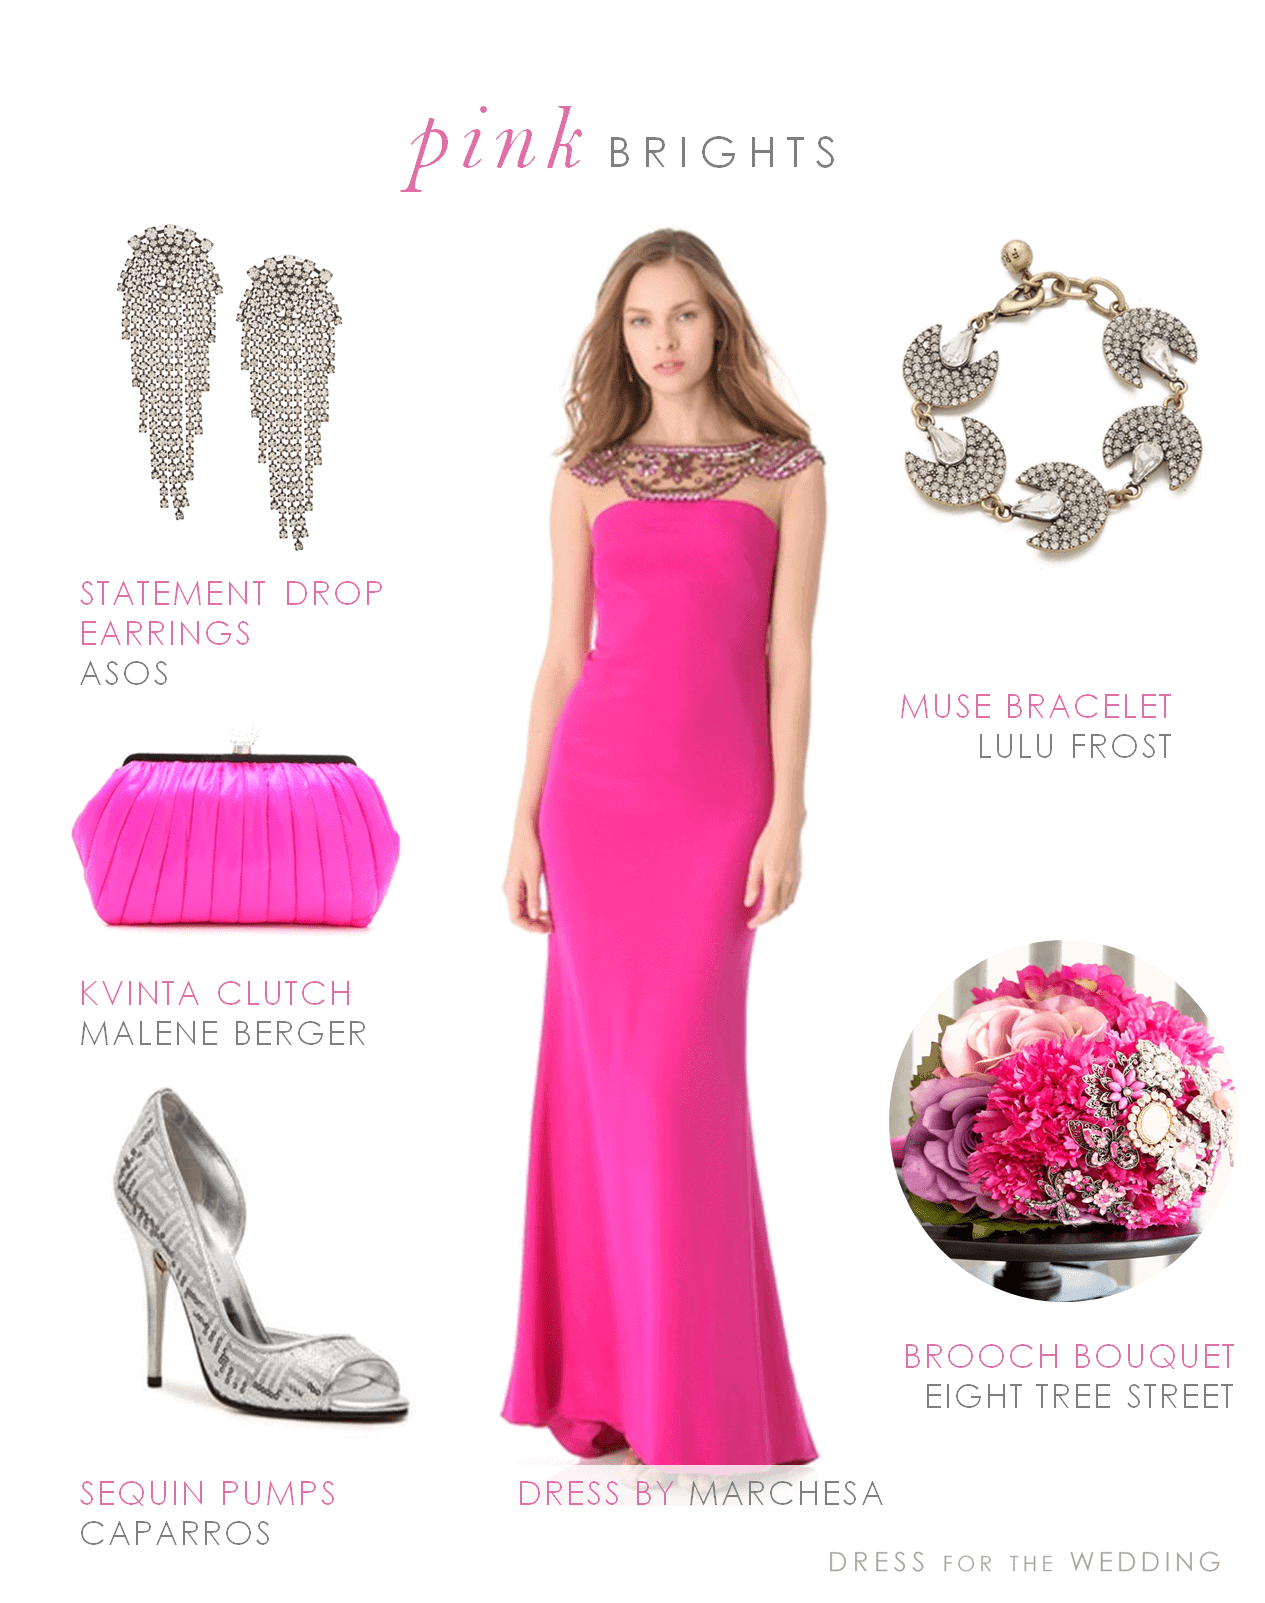 Hot Pink Formal Gown Inspired by EightTreeStreet Modern Florals